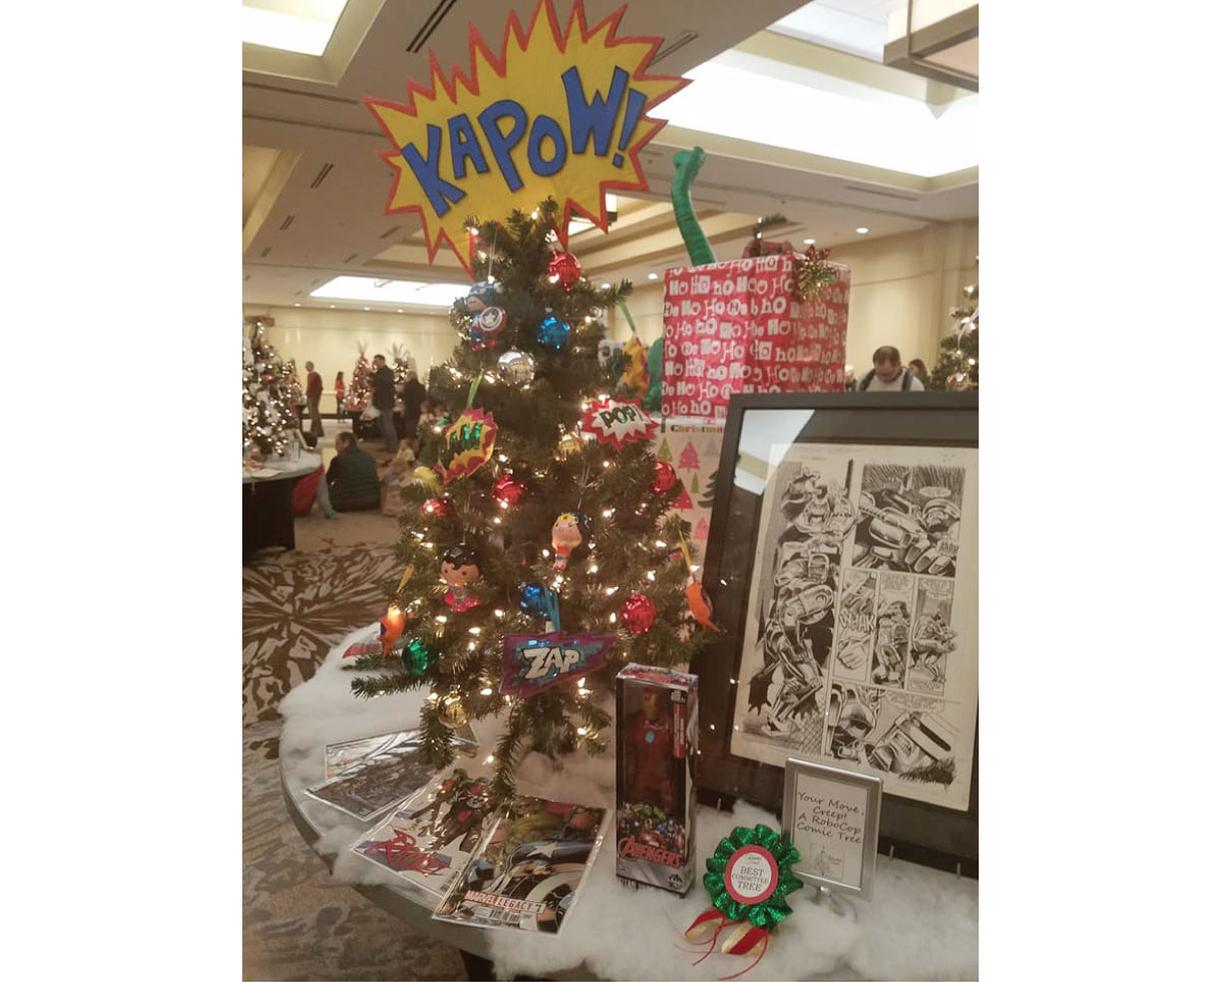 The Enchanted Forest Festival at the Sheraton Tysons Hotel